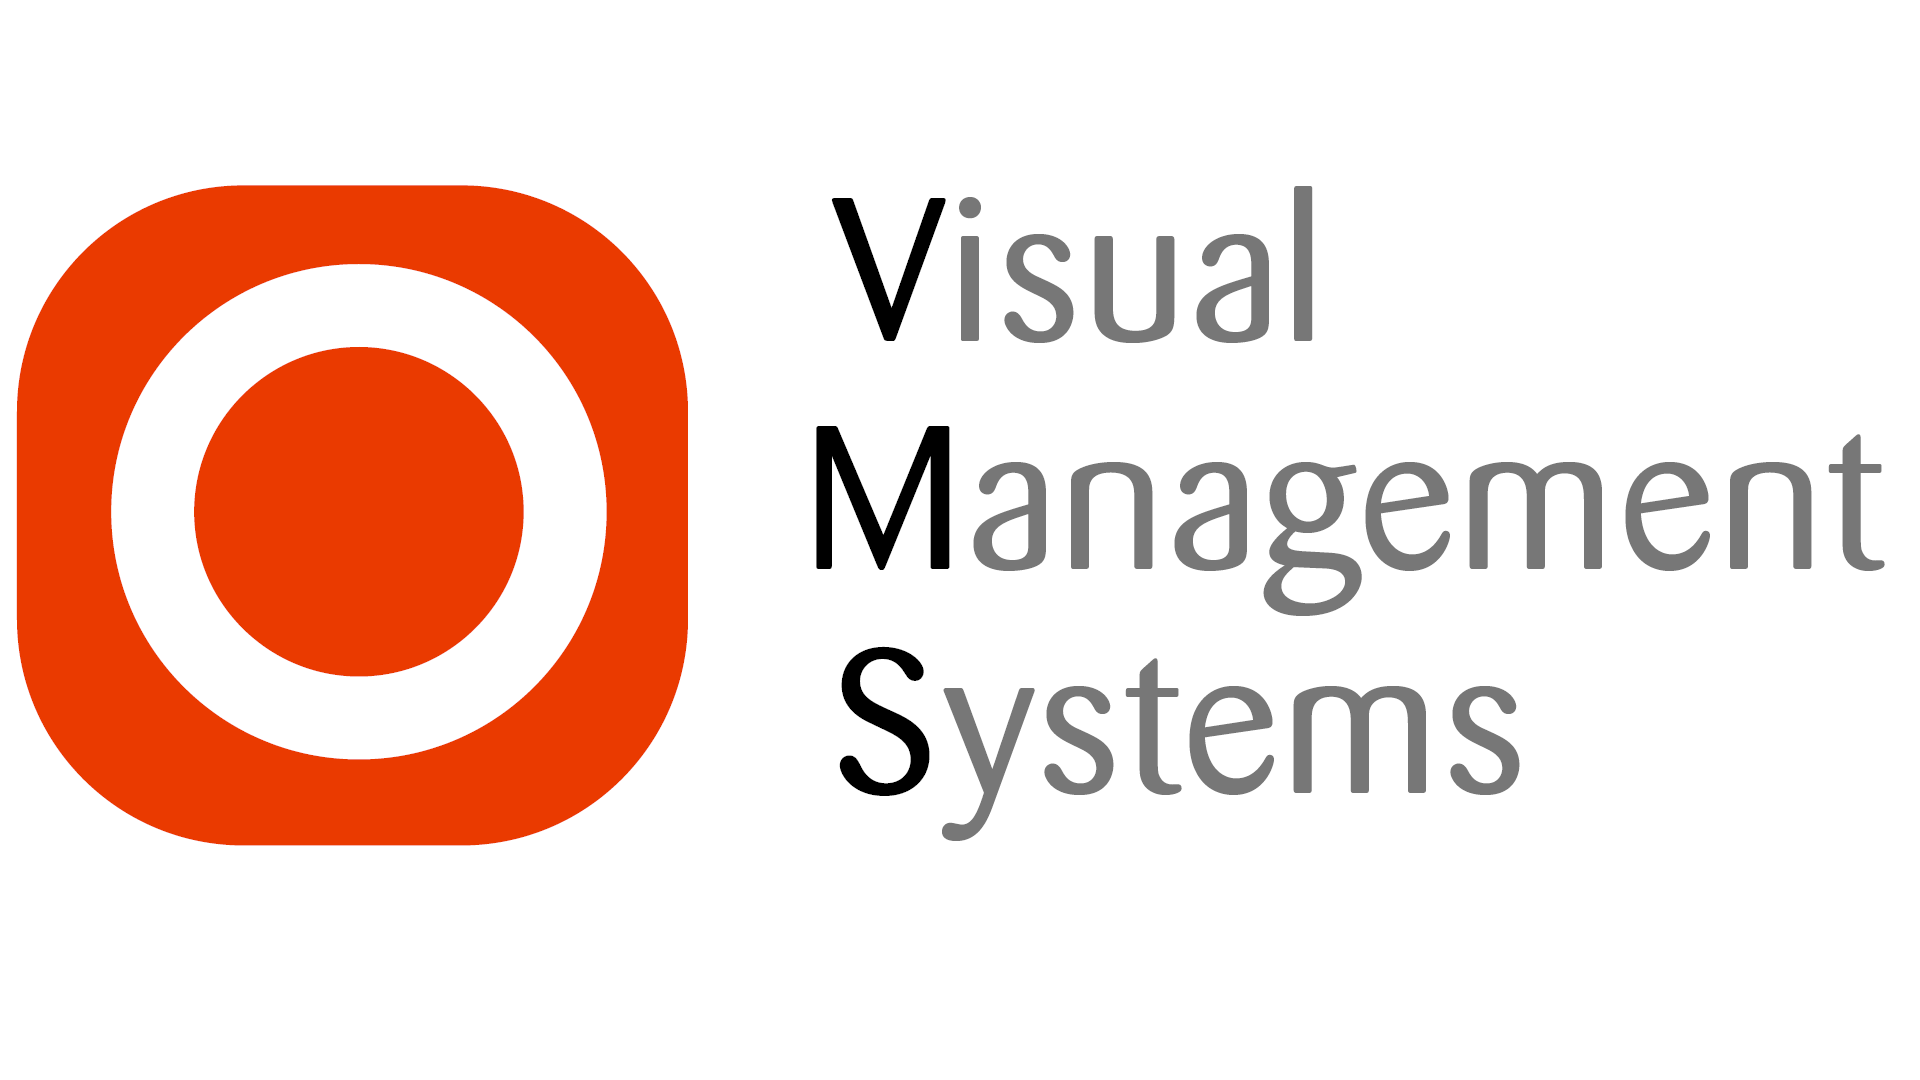 Visual Management Systems